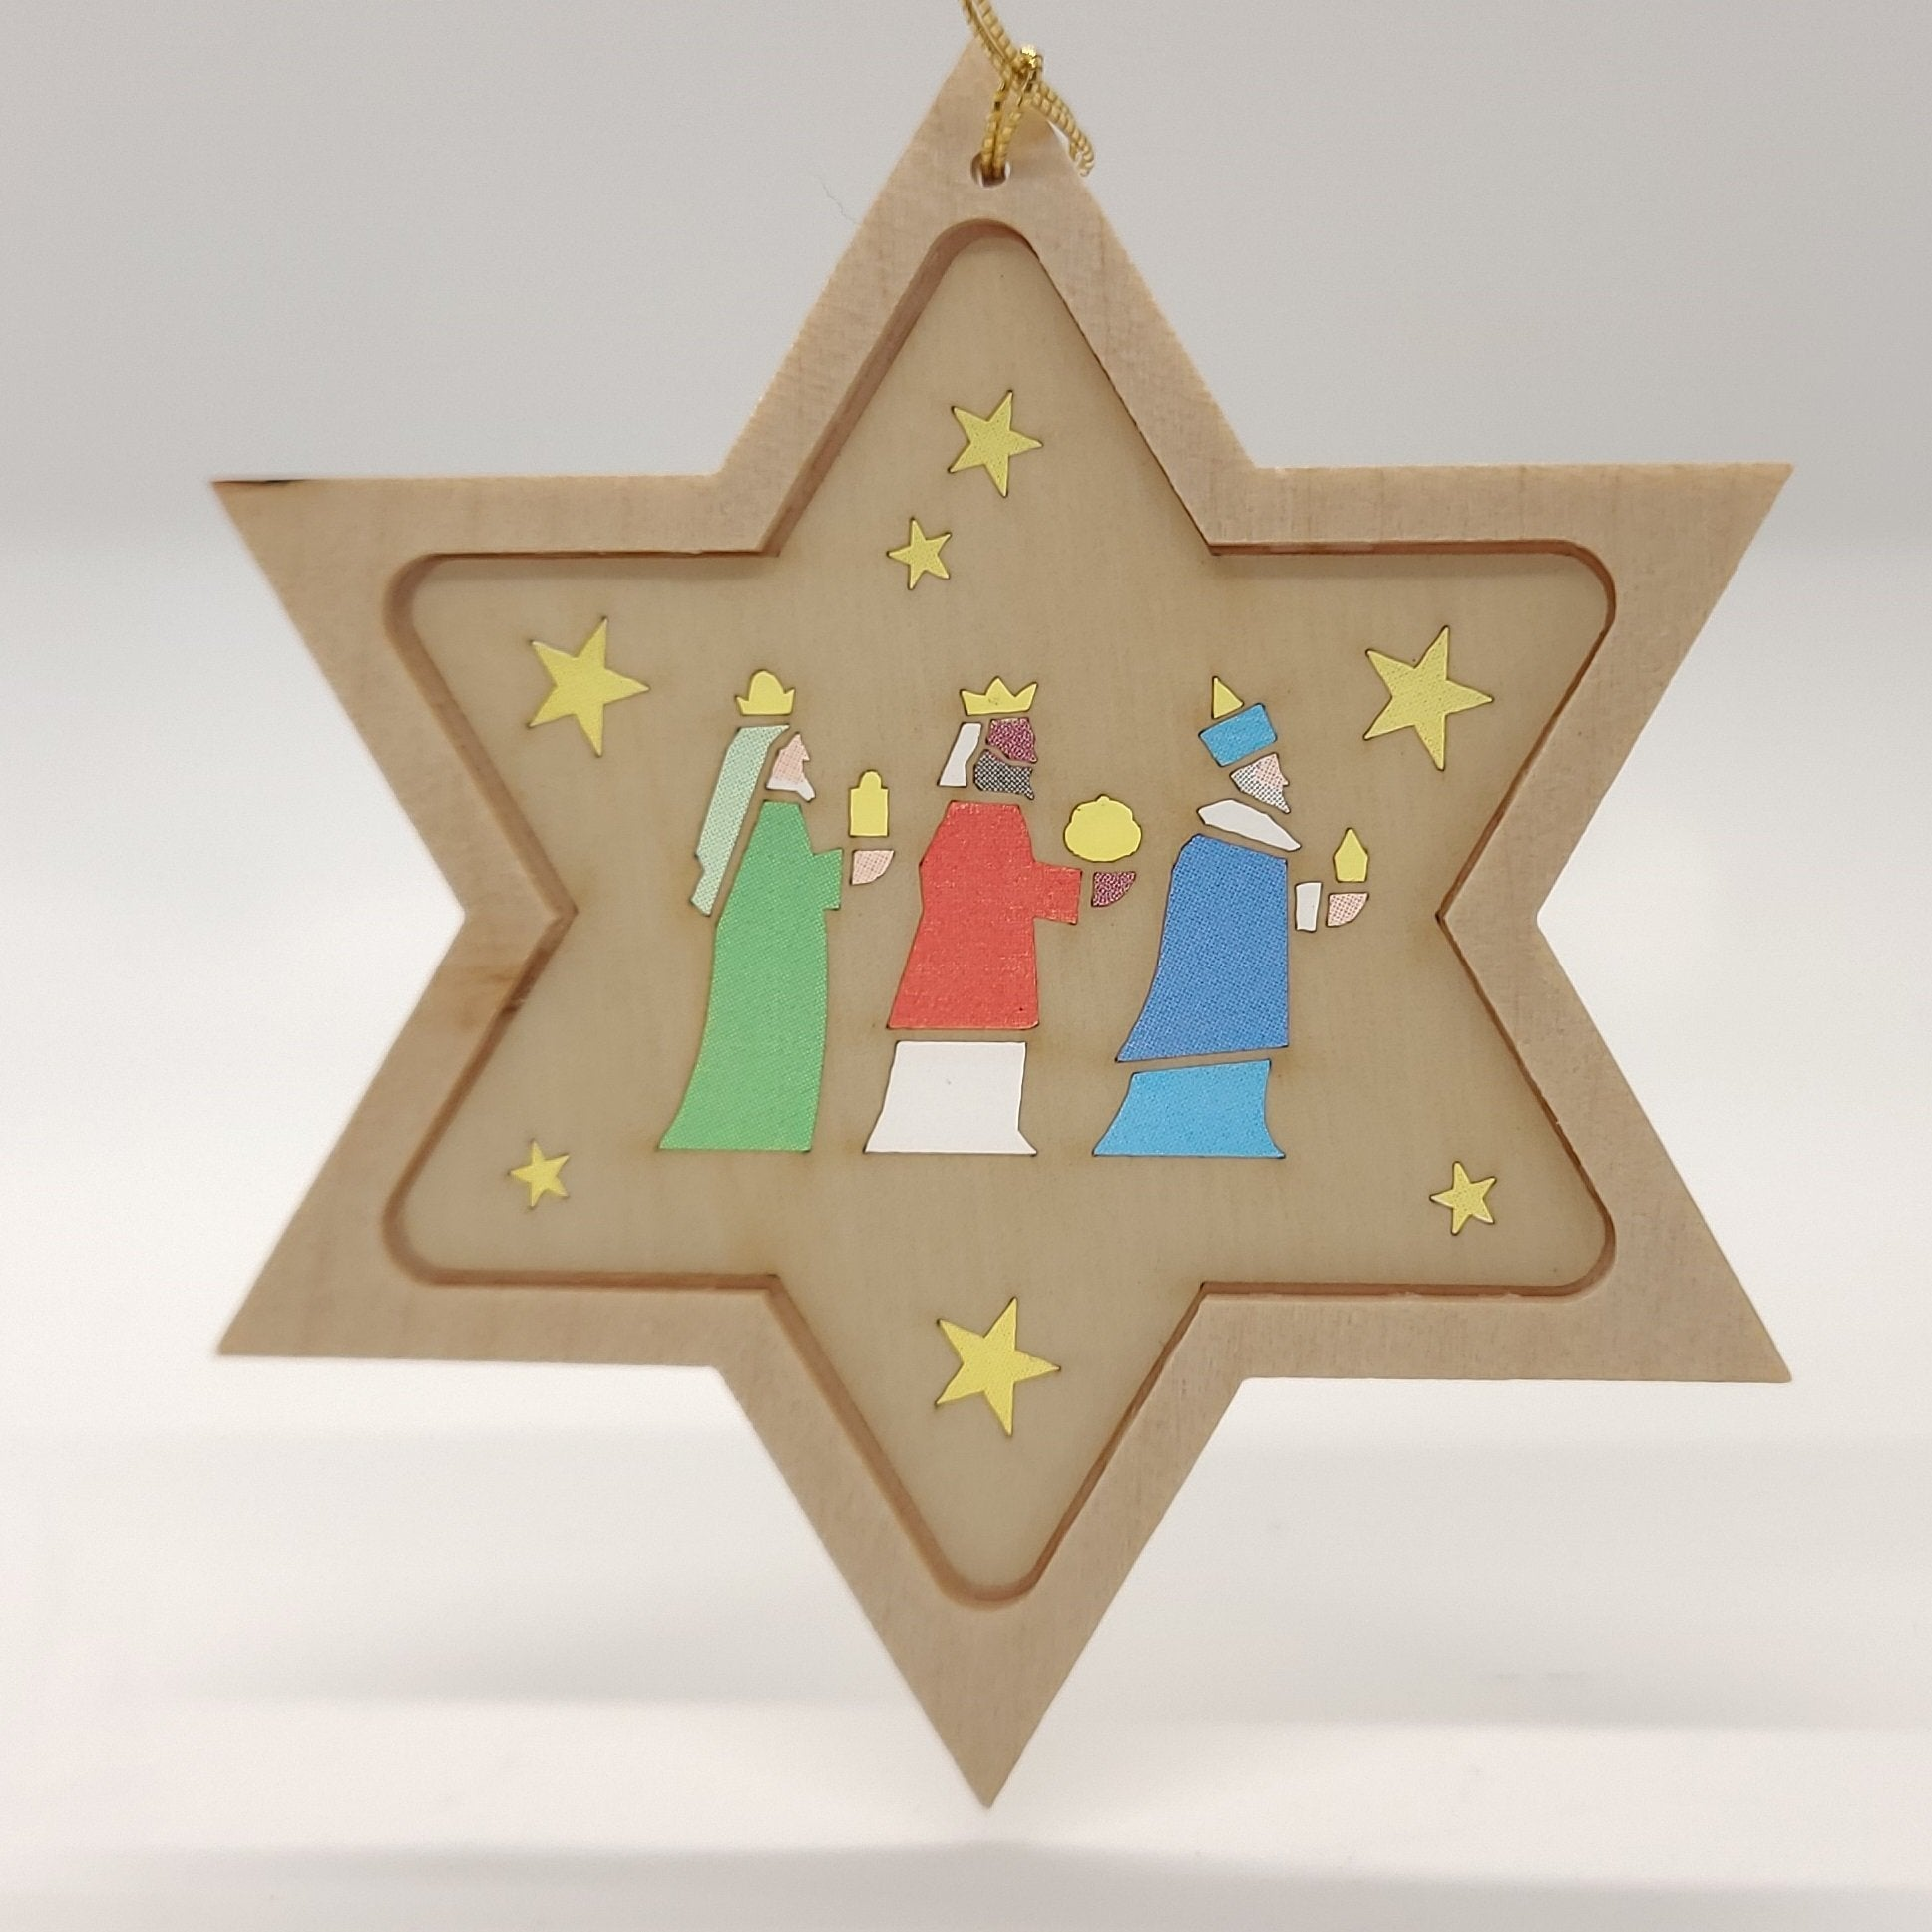 Handmade Wood Star na may 3 Wise Men na nakasabit na gayak - Schmidt Christmas Market Christmas Decoration